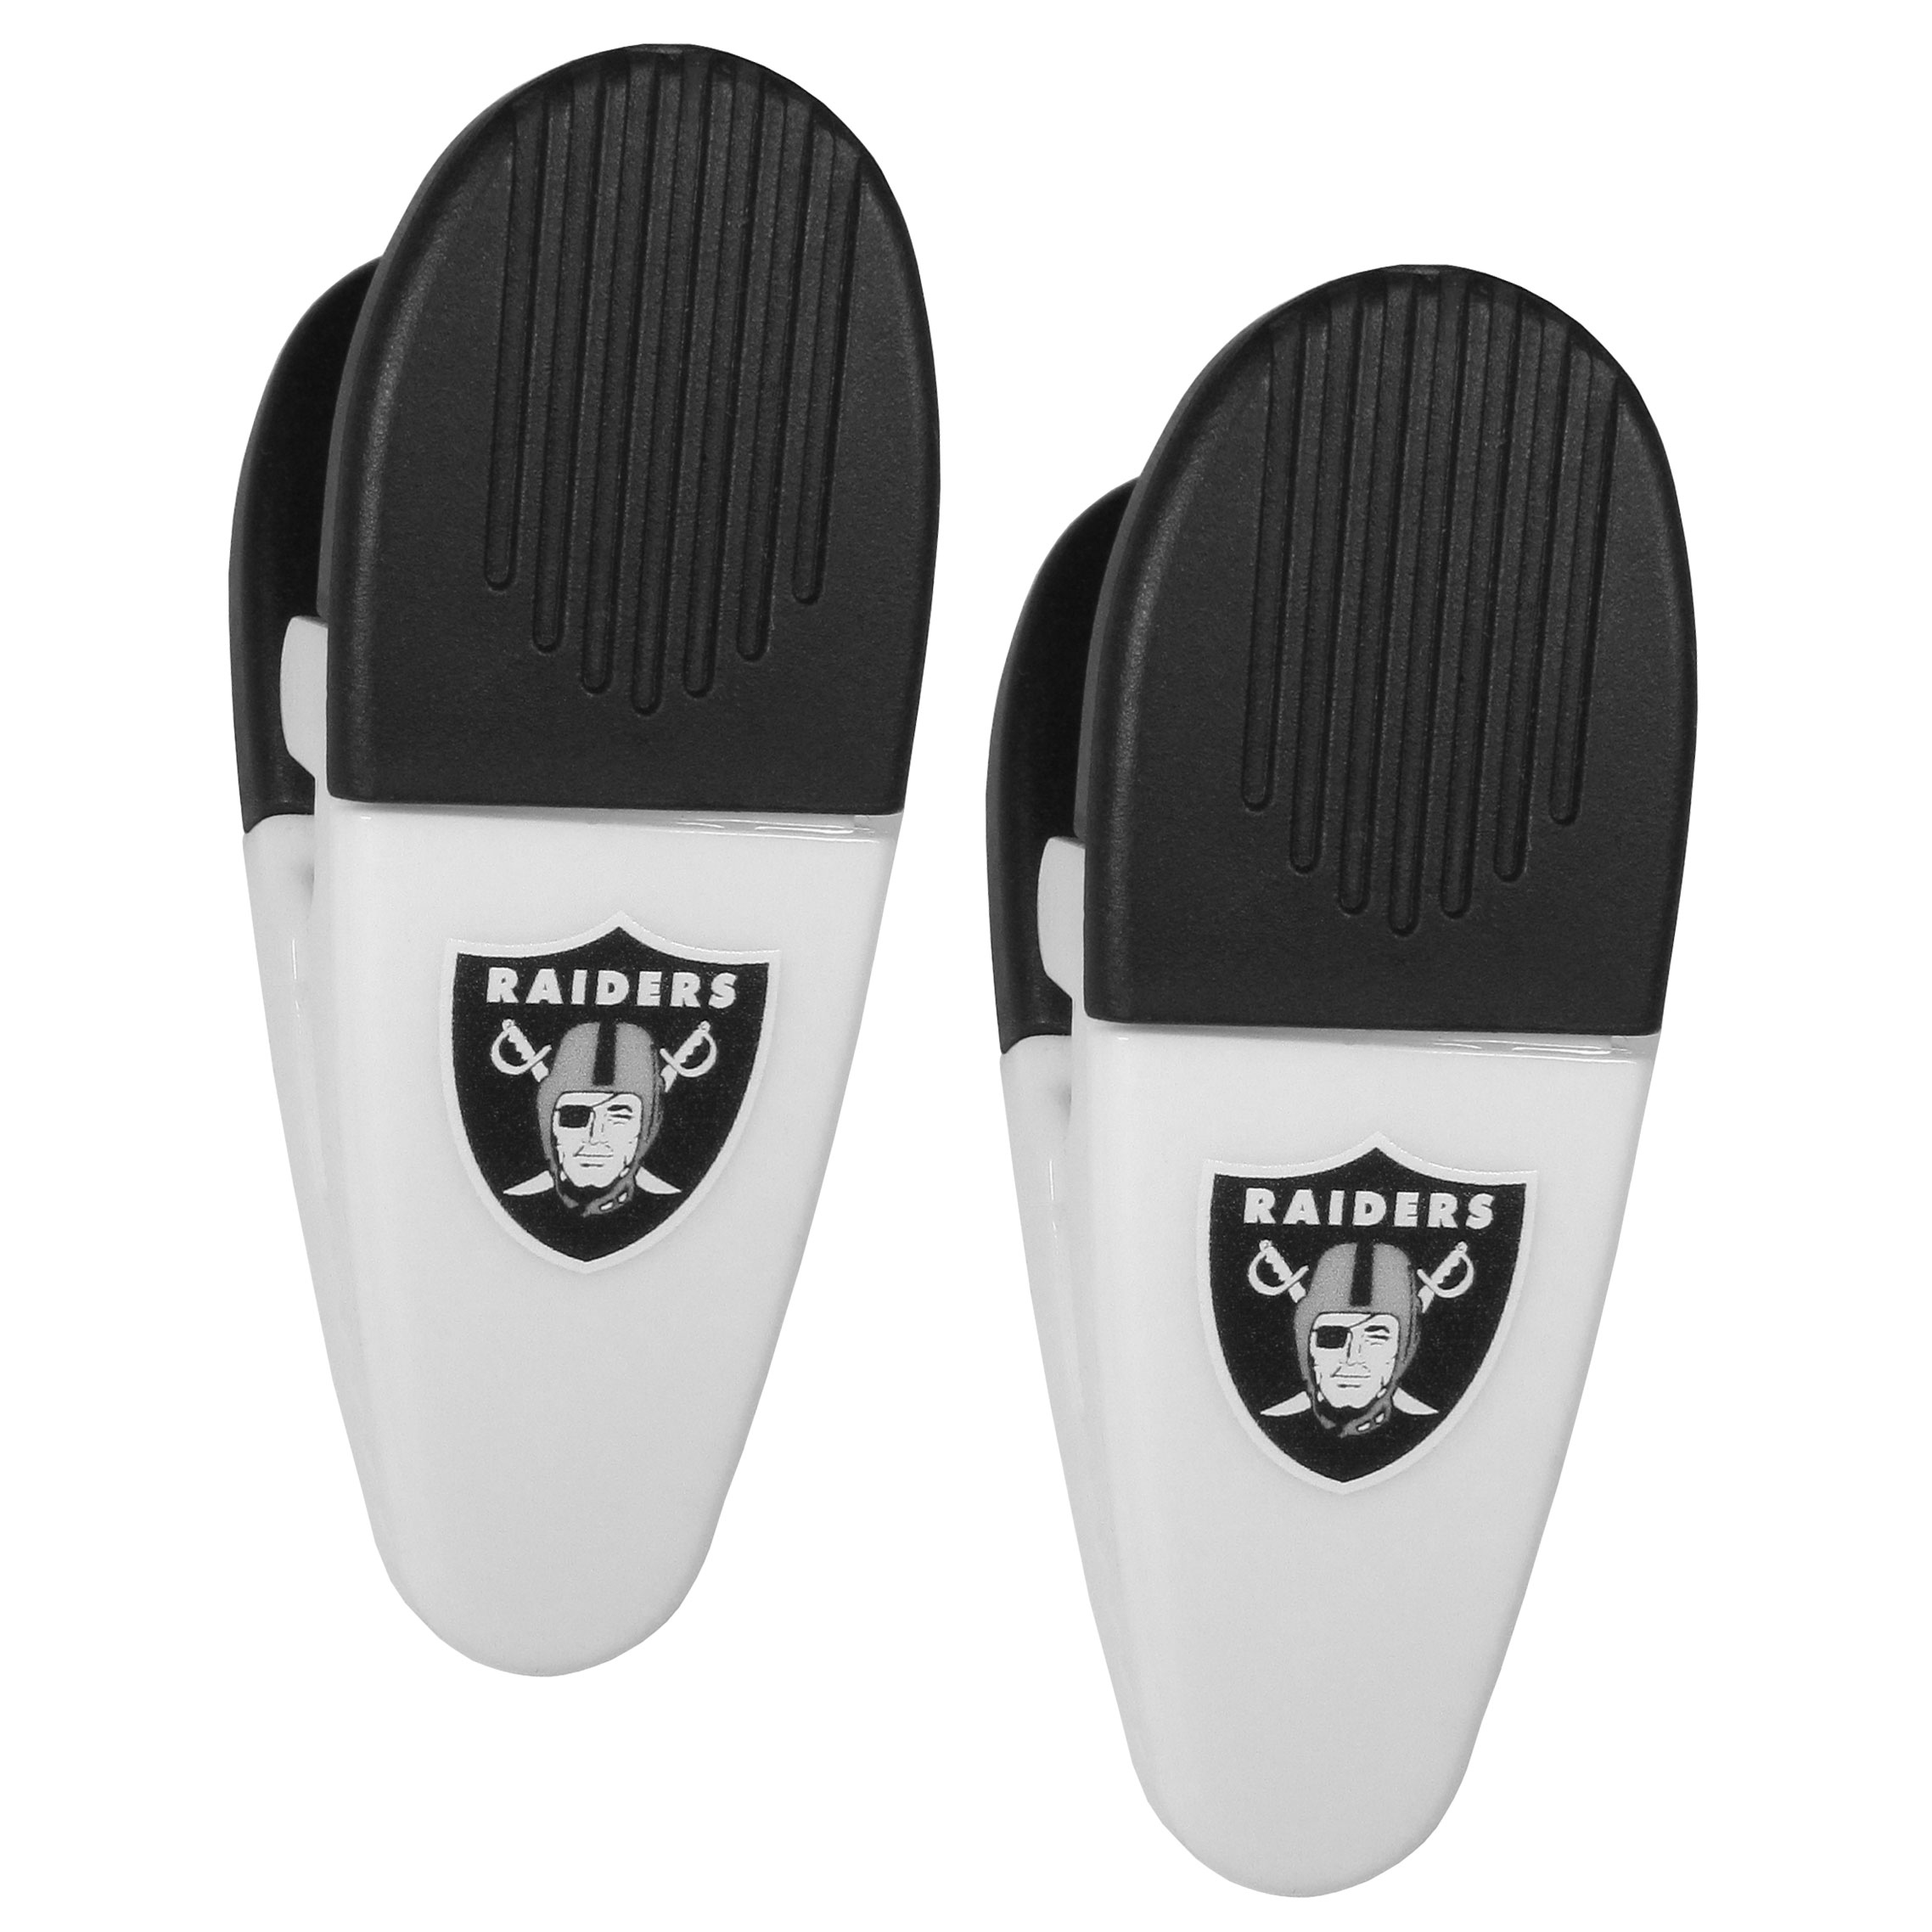 Oakland Raiders Mini Chip Clip Magnets, 2 pk - Our Oakland Raiders chip clip magnets feature a crisp team logo on the front of the clip. The clip is perfect for sealing chips for freshness and with the powerful magnet on the back it can be used to attach notes to the fridge or hanging your child's artwork. Set of 2 magnet clips, each clip is 3.5 inches tall and 1.25 inch wide.